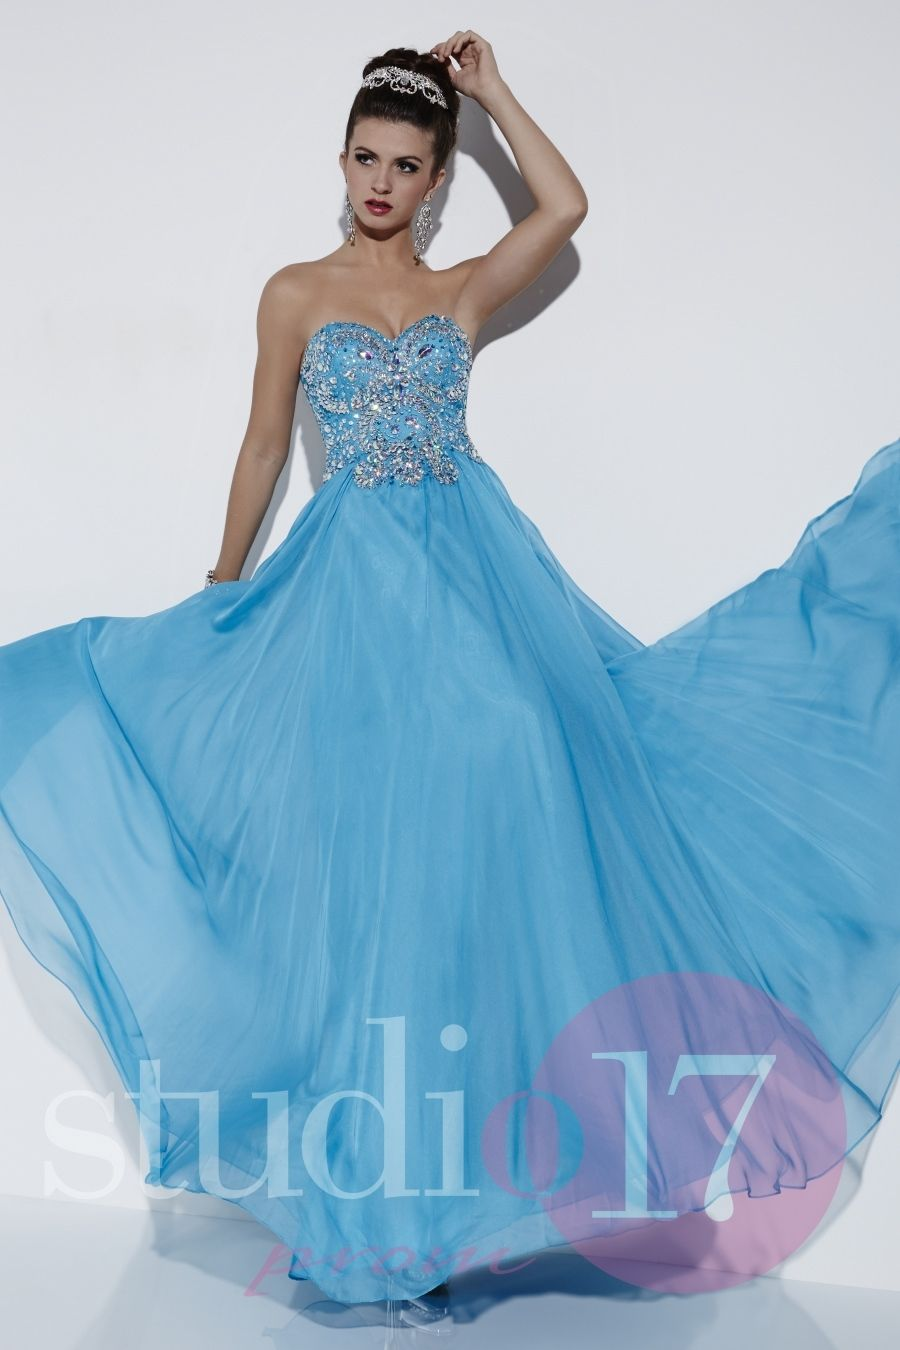 Studio 17 Long Dress 12525 Long Gown - Everything4pageants.com